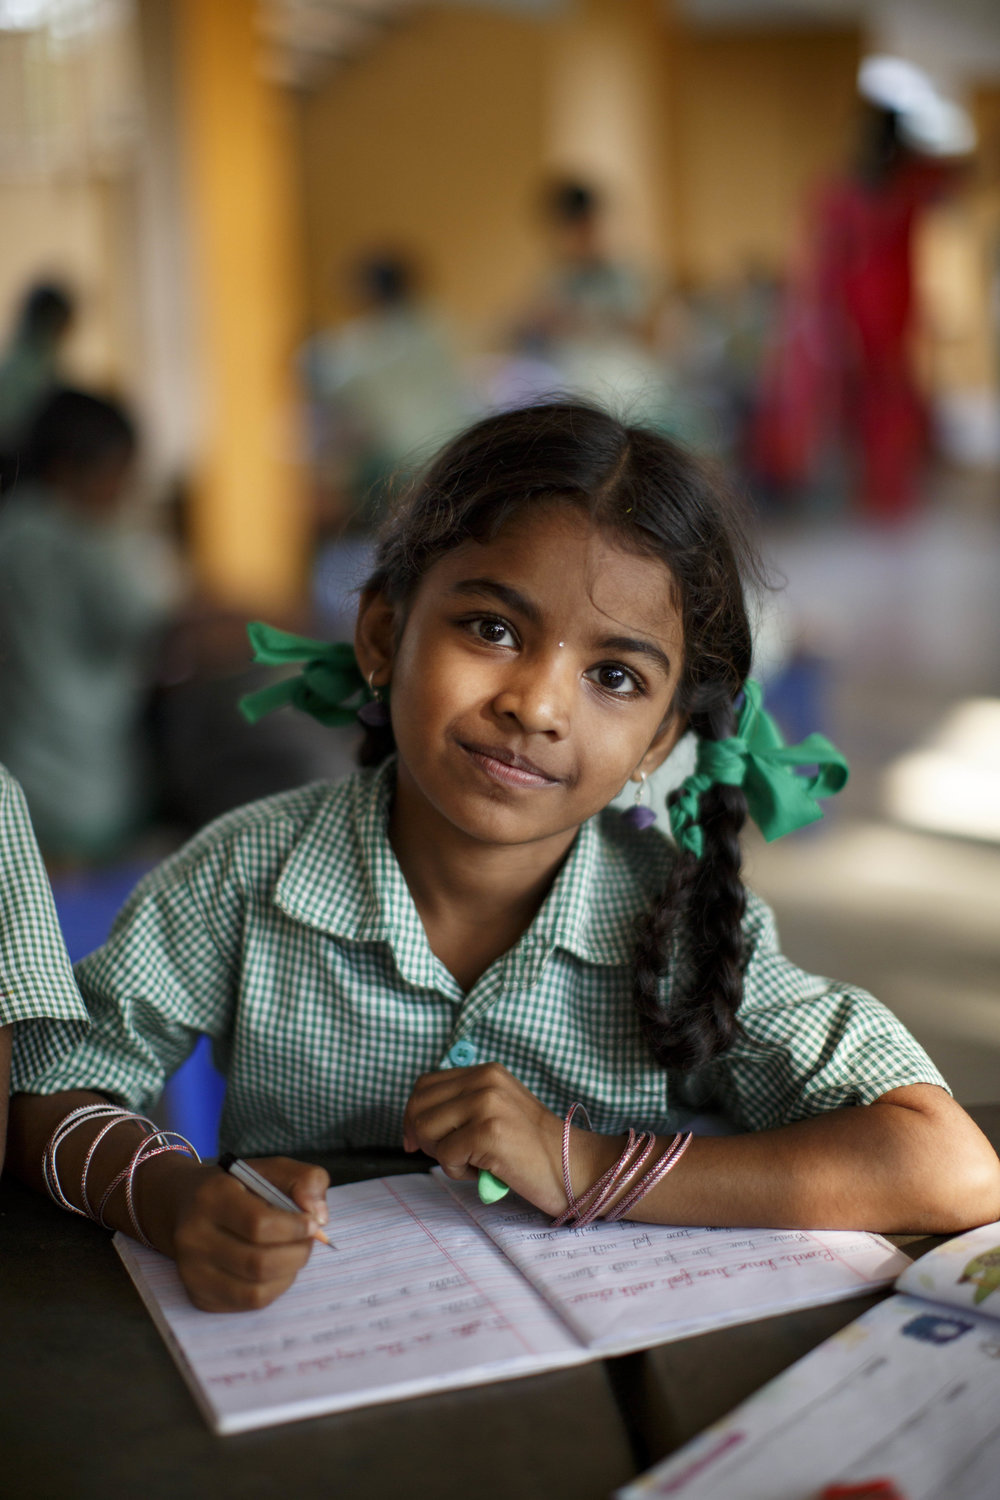 A girl from a local village receives tutoring support at Aikiyam school, which provides an innovative-educational model for village students from rural Tamil Nadu.